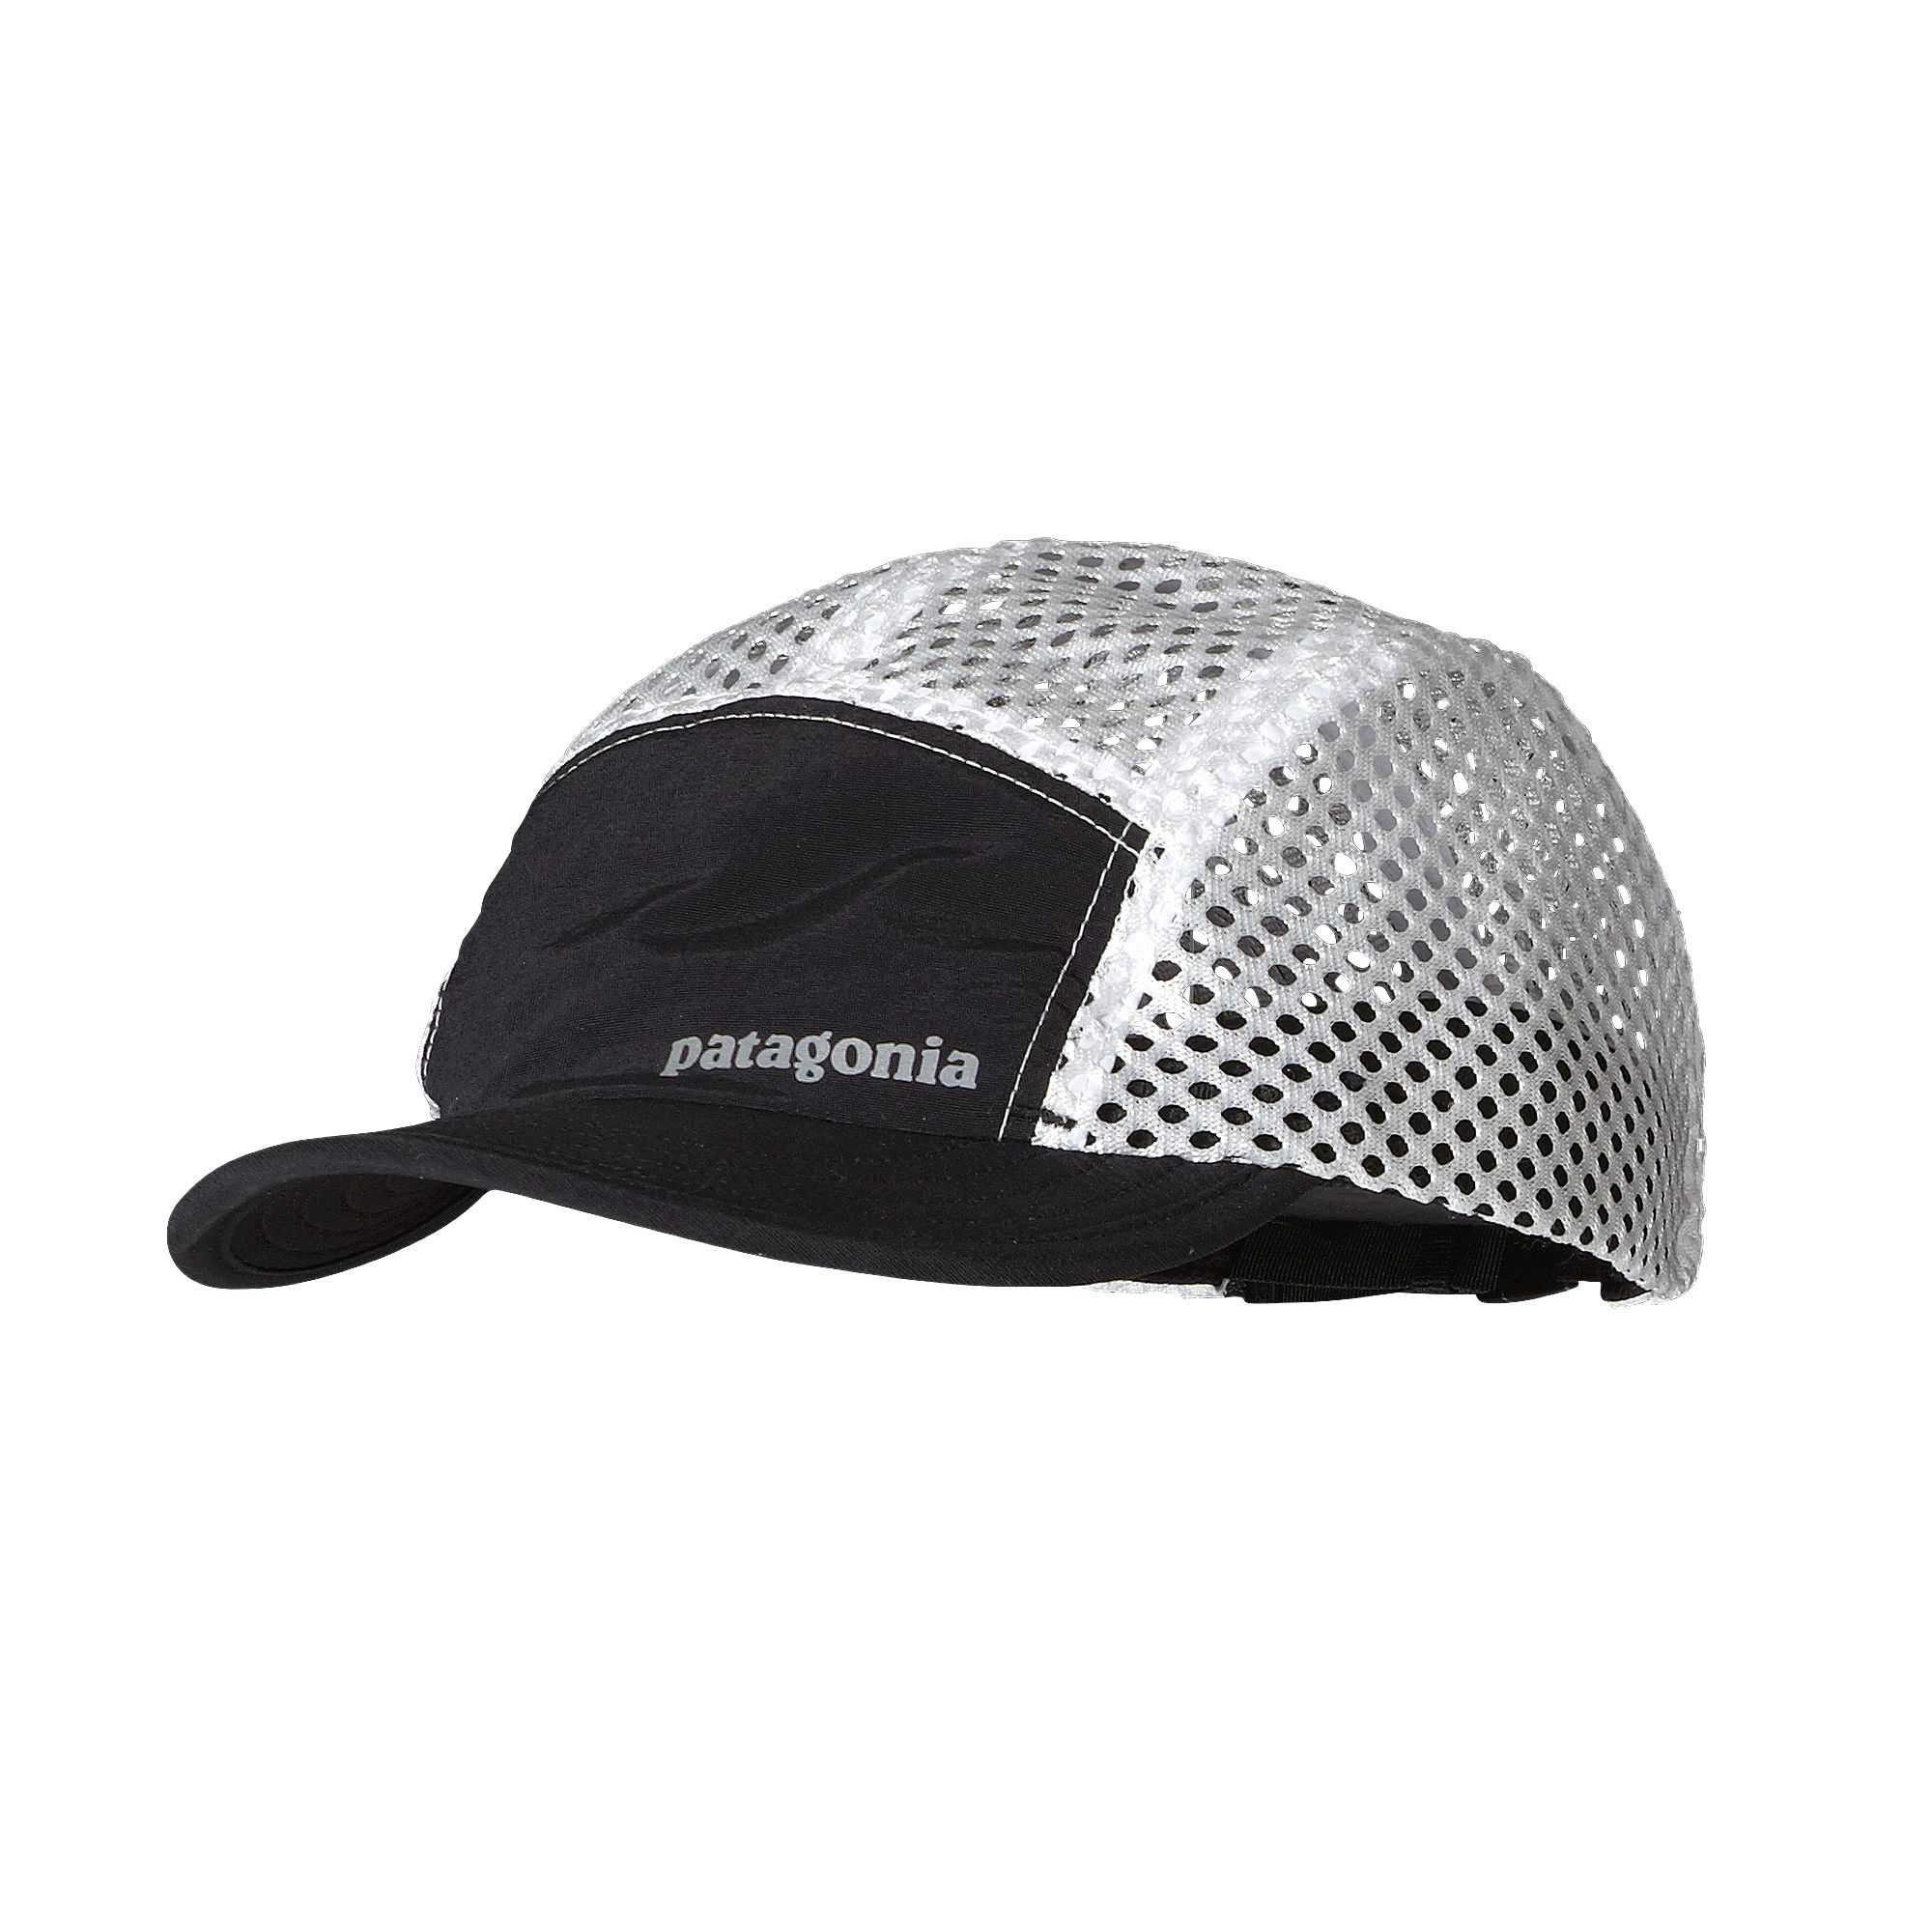 Best for Long Runs  Patagonia Duckbill Cap 46d2b6e633a